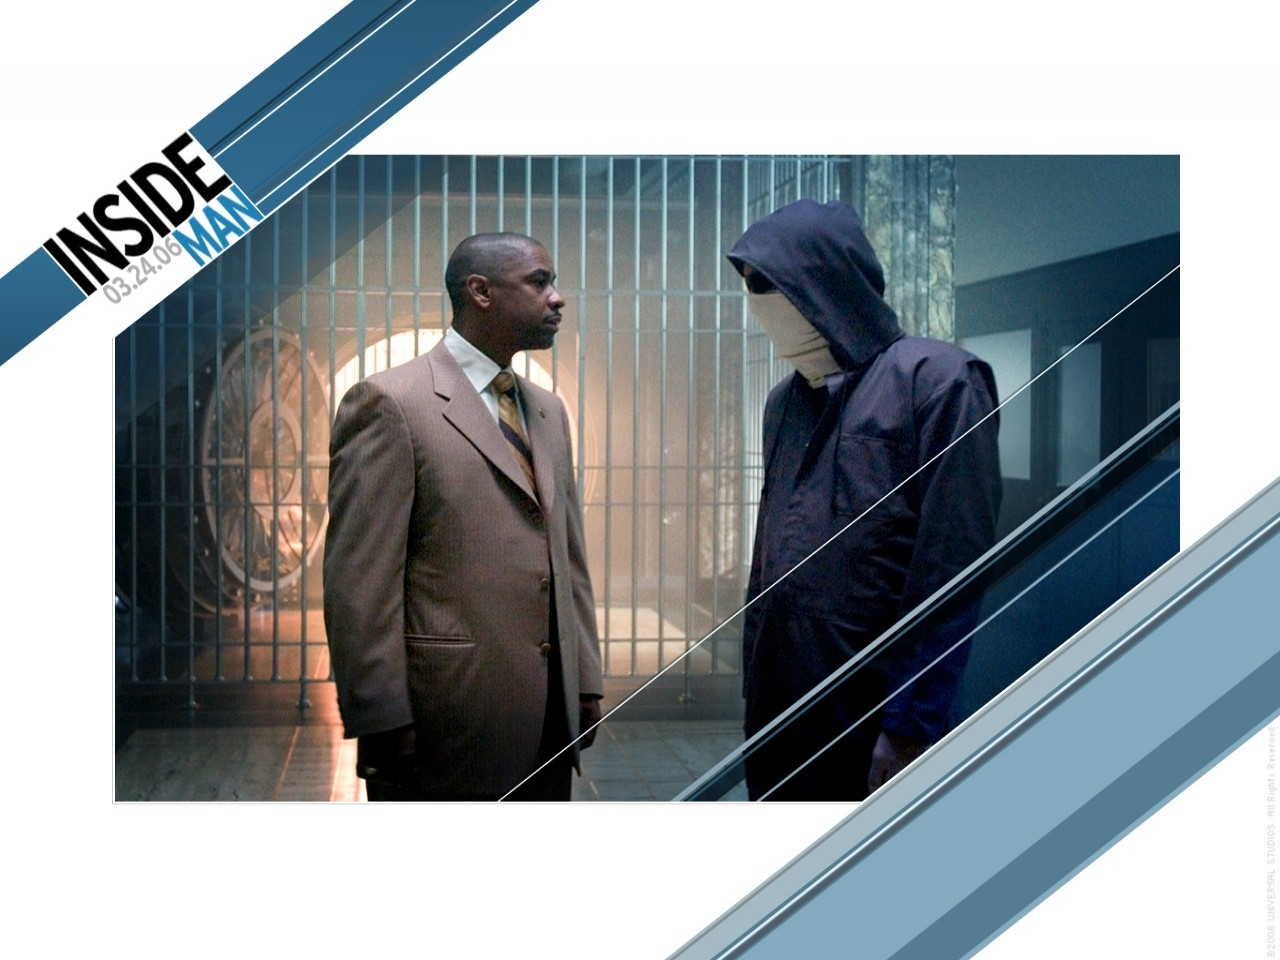 Wallpaper del film Inside Man con Denzel Washington